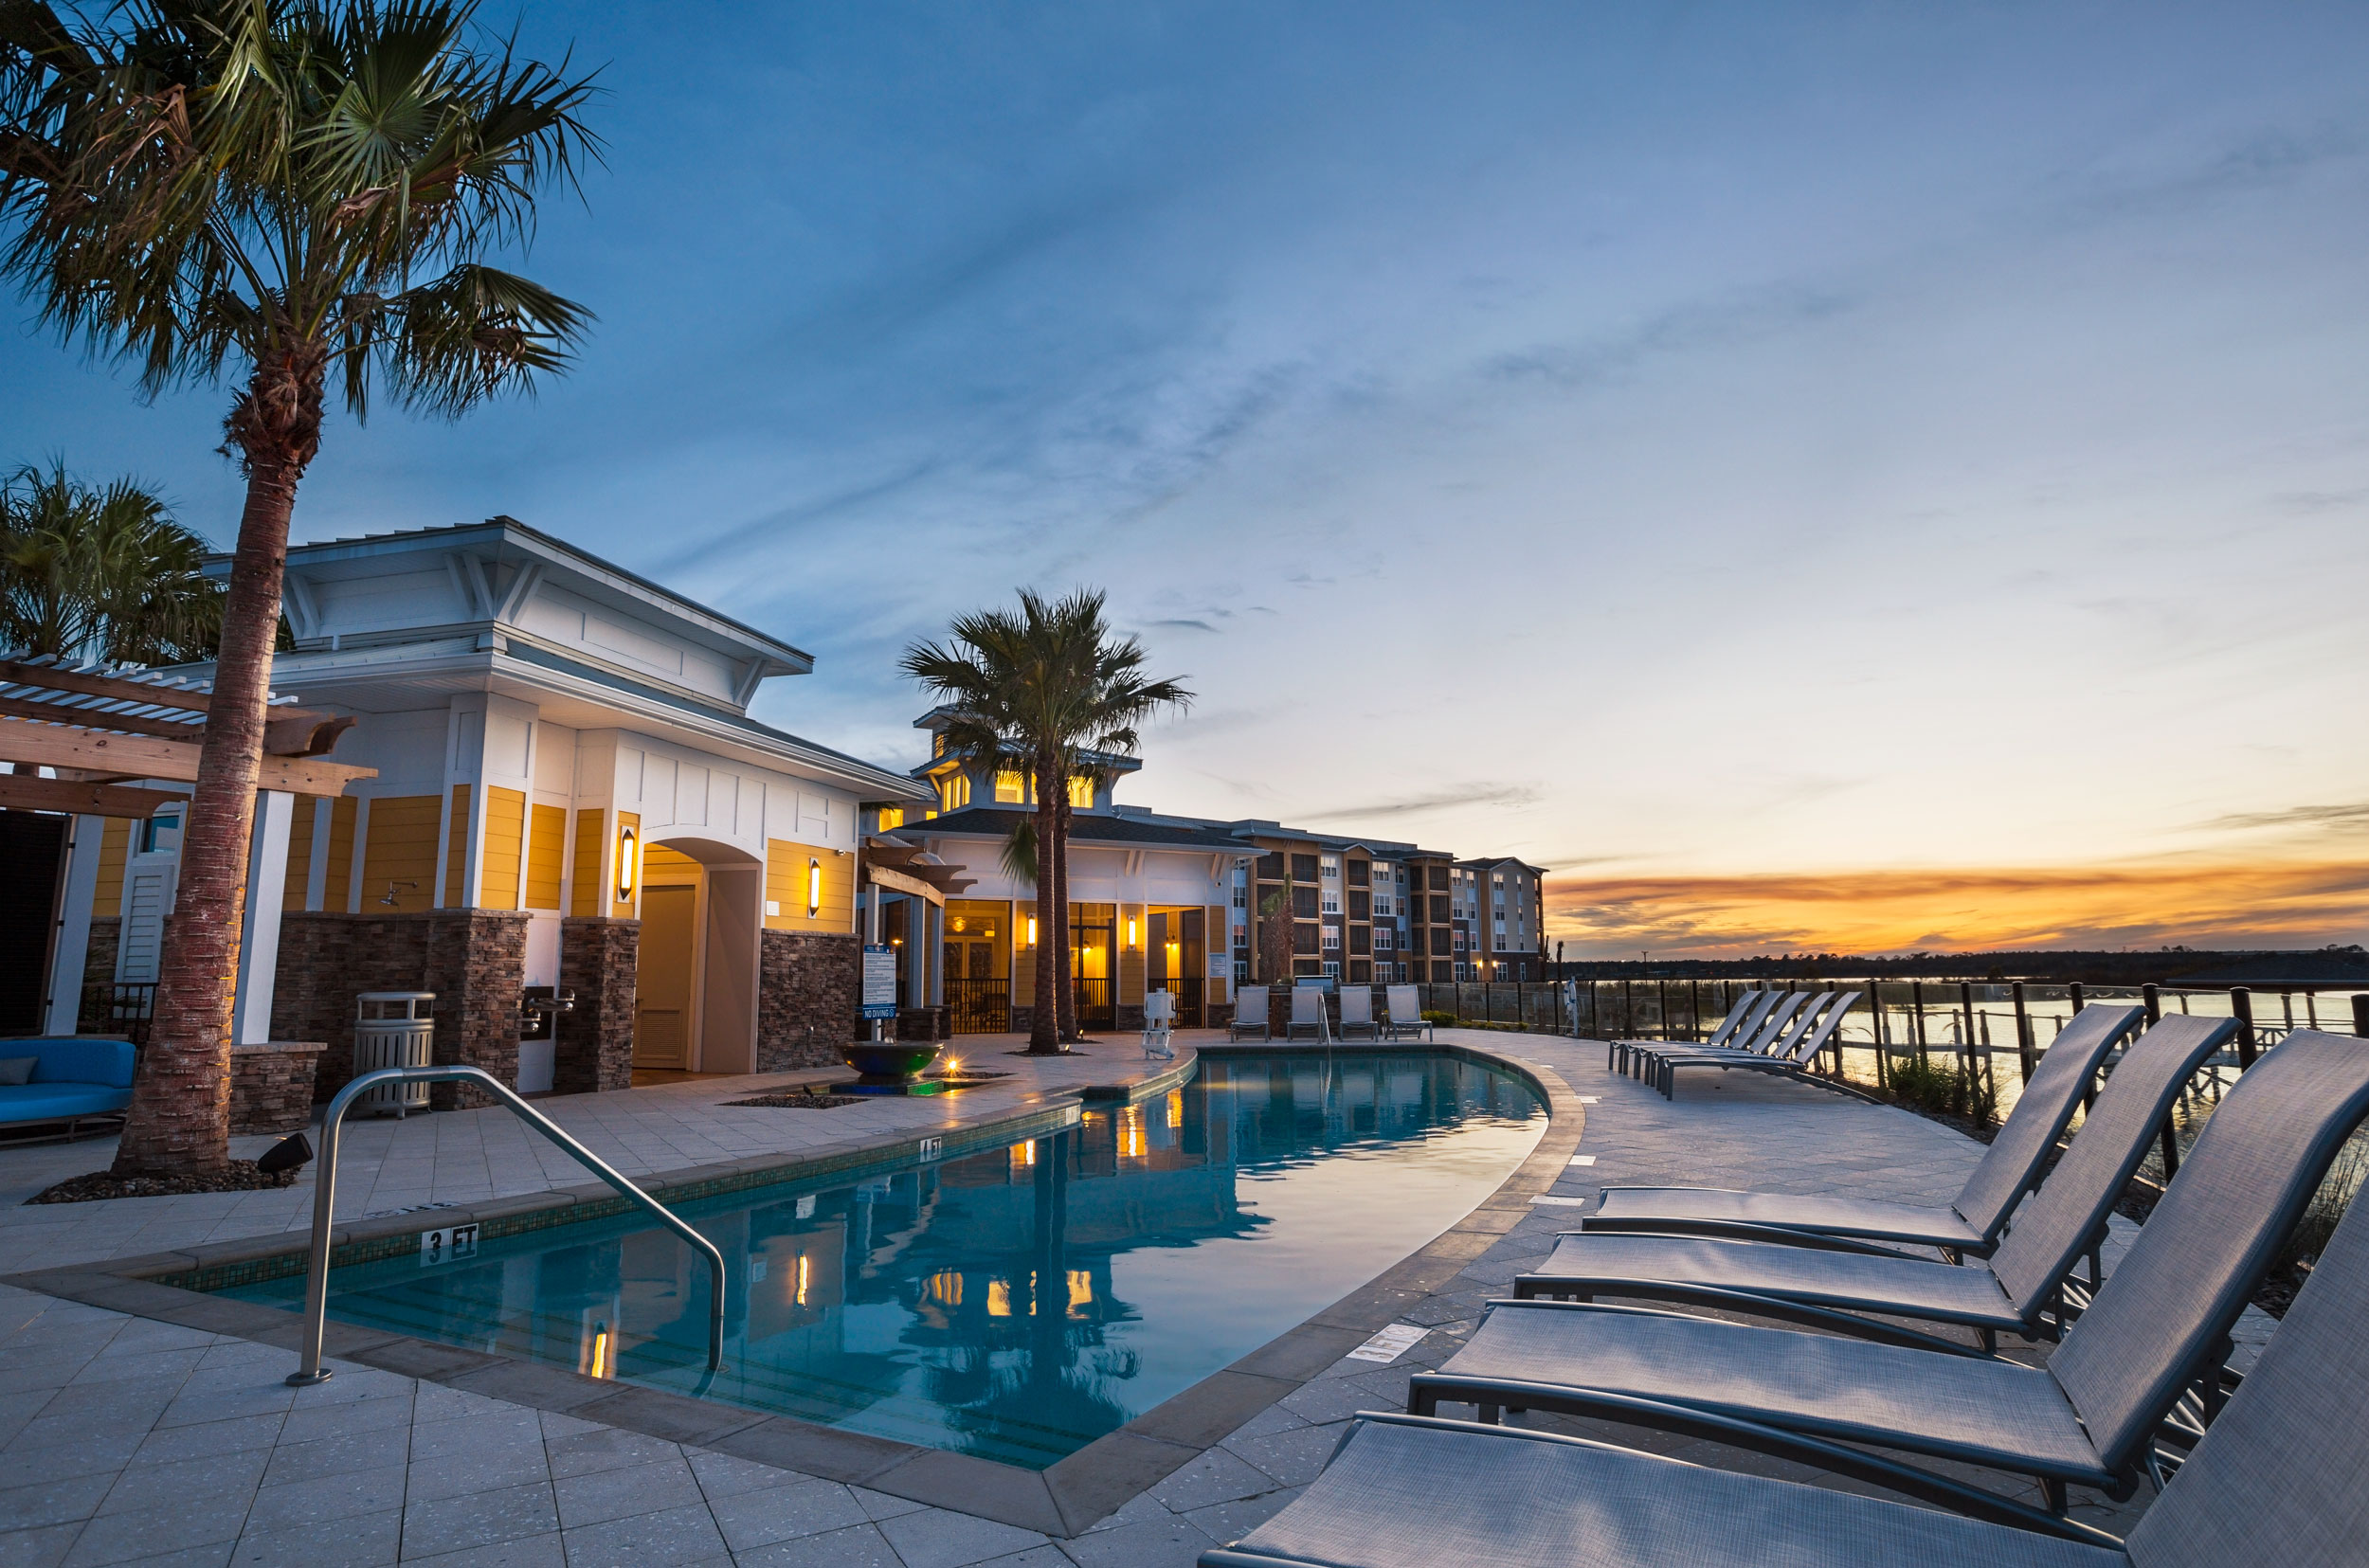 commercial photography image of waterside pool resort